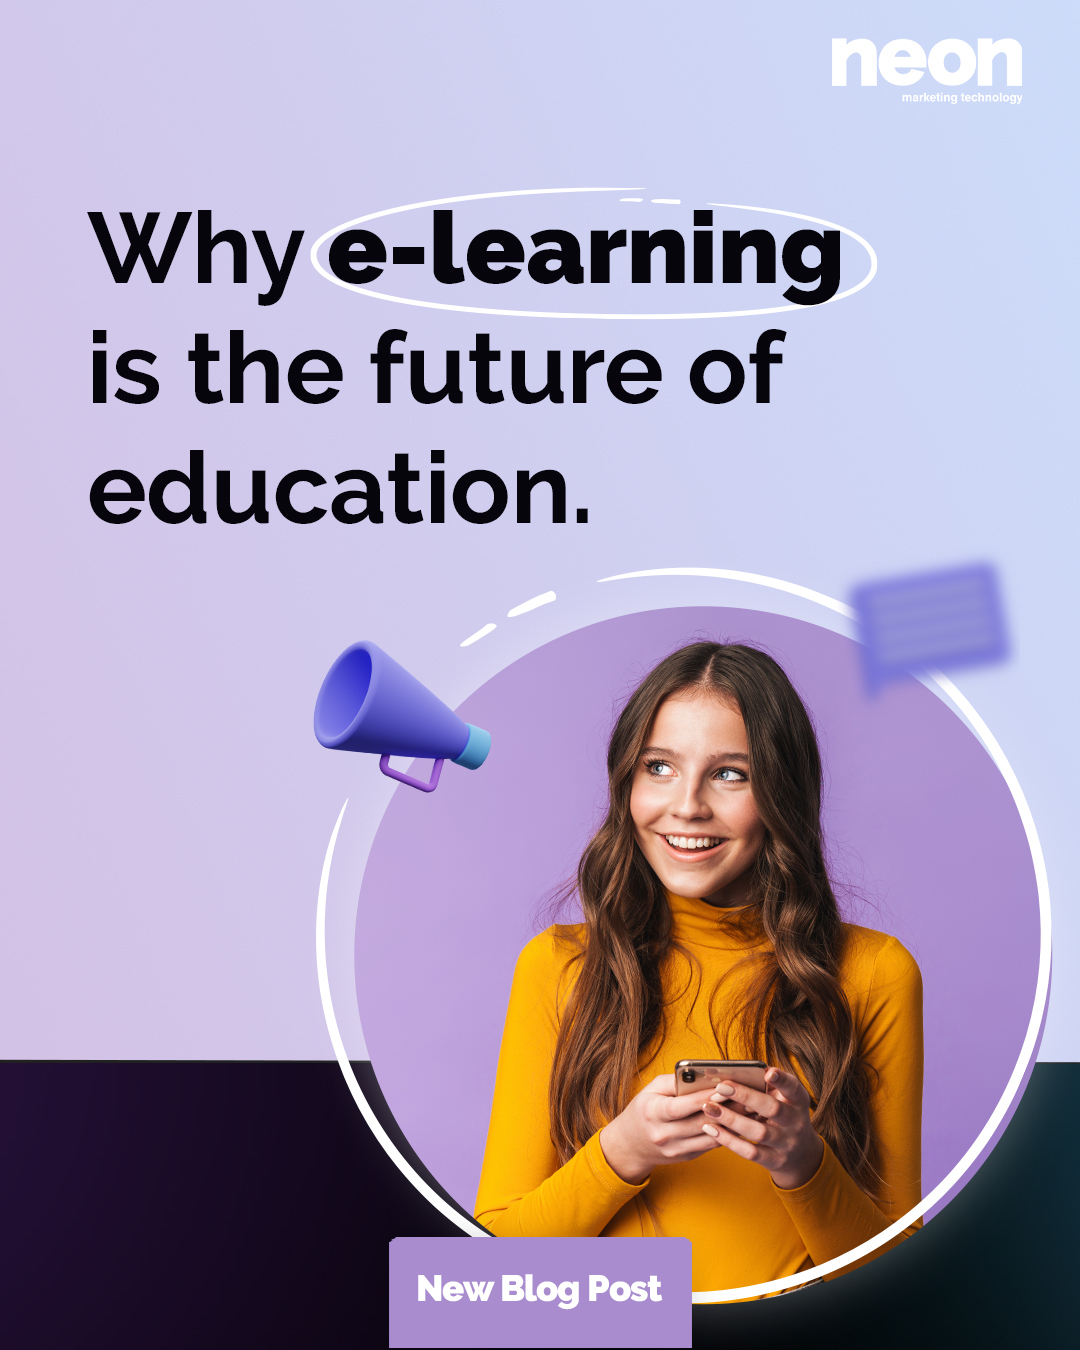 Why e-learning is the future of education